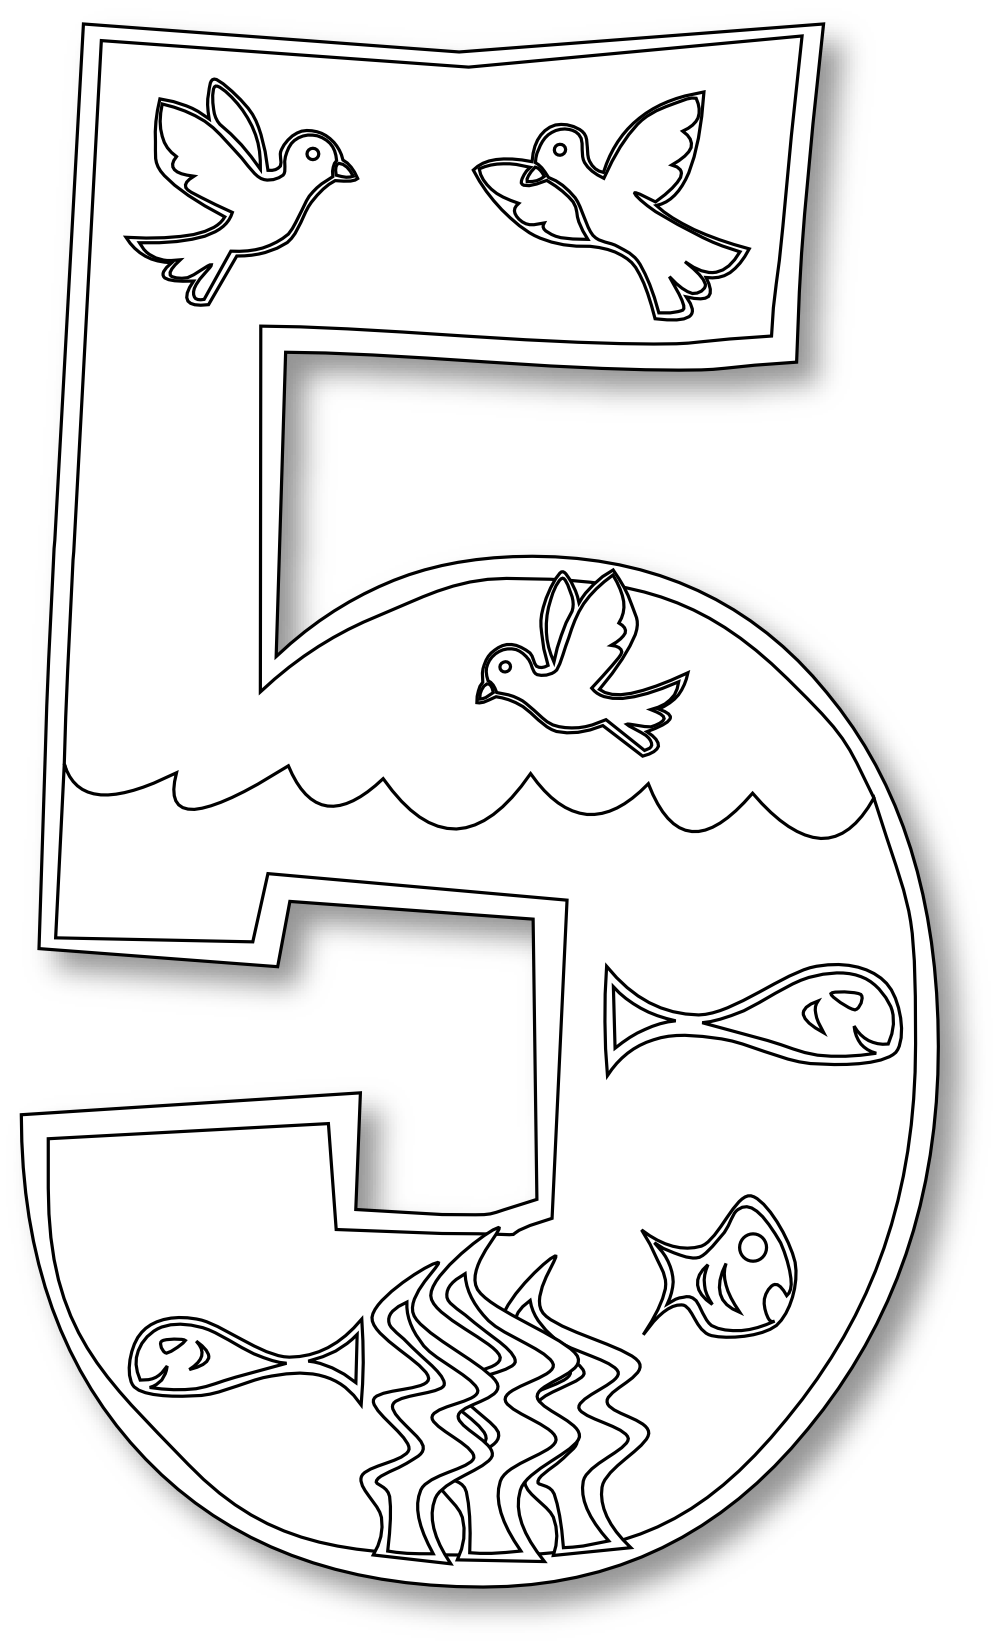 7 days of creation coloring pages free 7 days of creation coloring pages coloring home creation of pages coloring days free 7